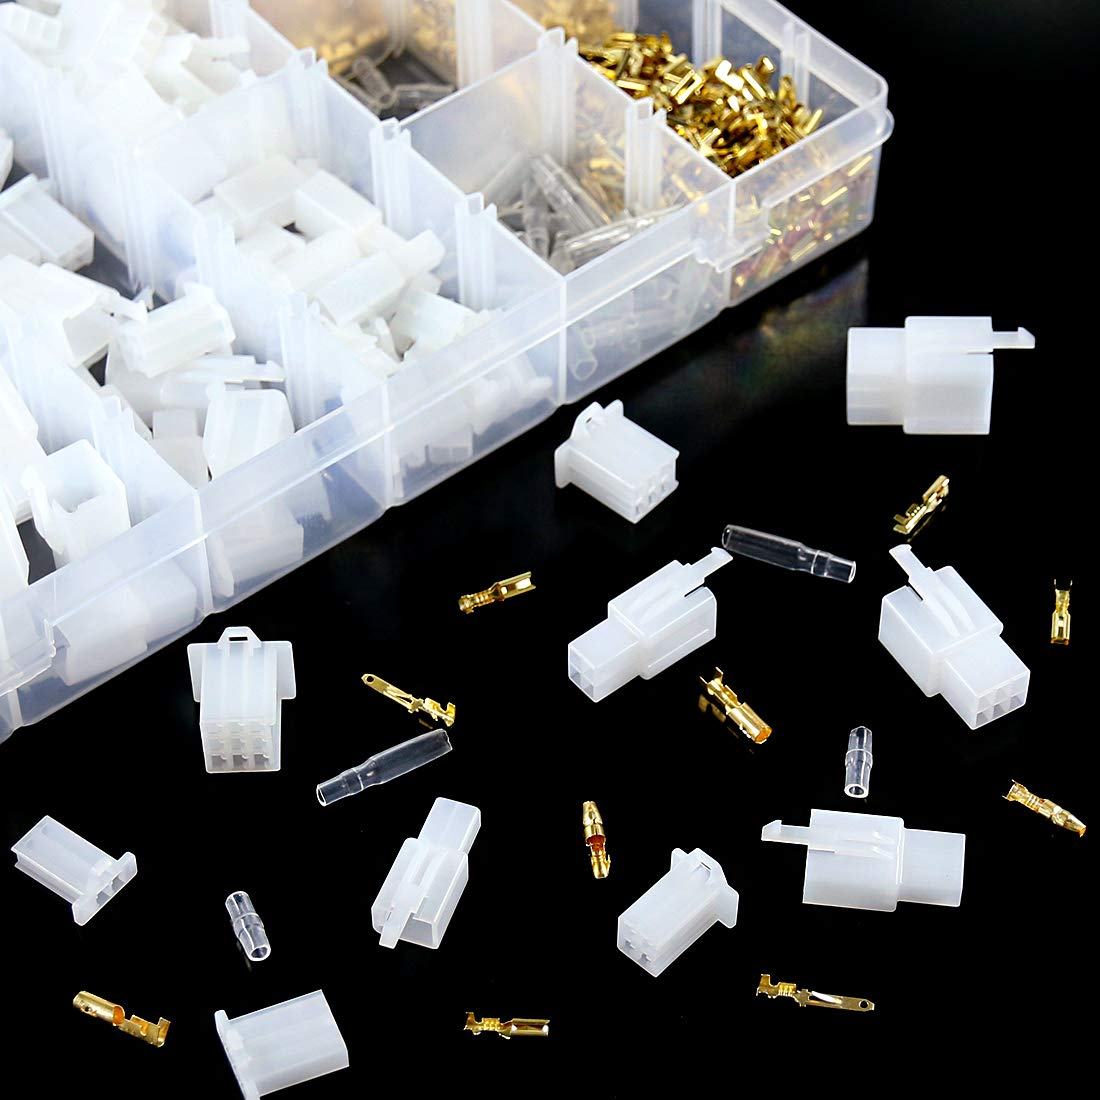 Swpeet 700Pcs Automotive Electrical Wire Connectors Kit 2.8mm 2 3 4 6 9 Pin Automotive Electrical Wire Connectors Pin Header Crimp Wire Terminals and 30 Kits 4mm Car Motorcycle Bullet Terminal Wire